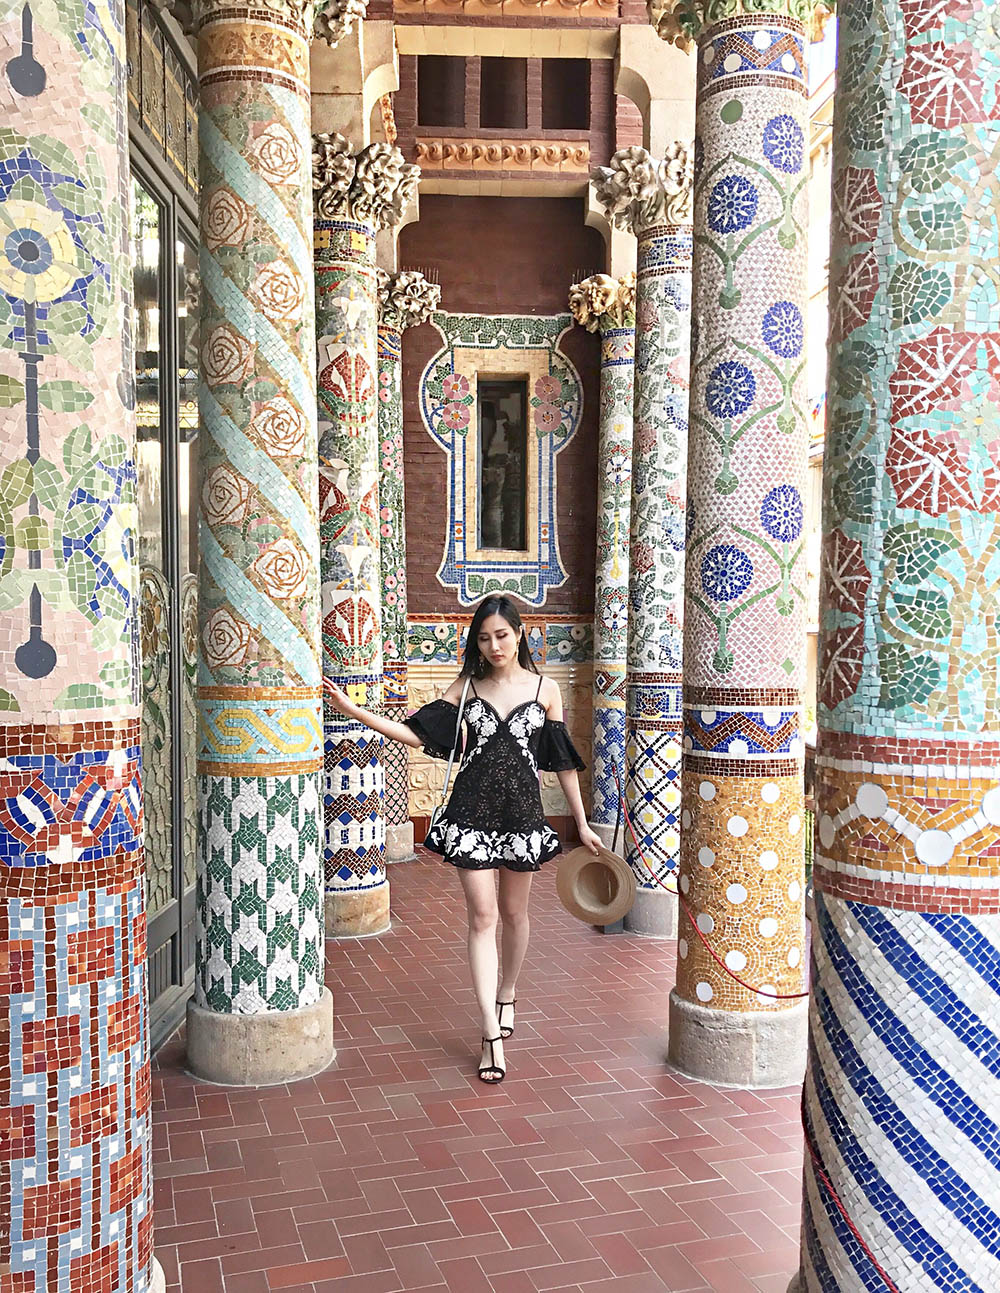 Hidden Gem of Barcelona - Palau de la Musica Catalana | Of Leather and Lace